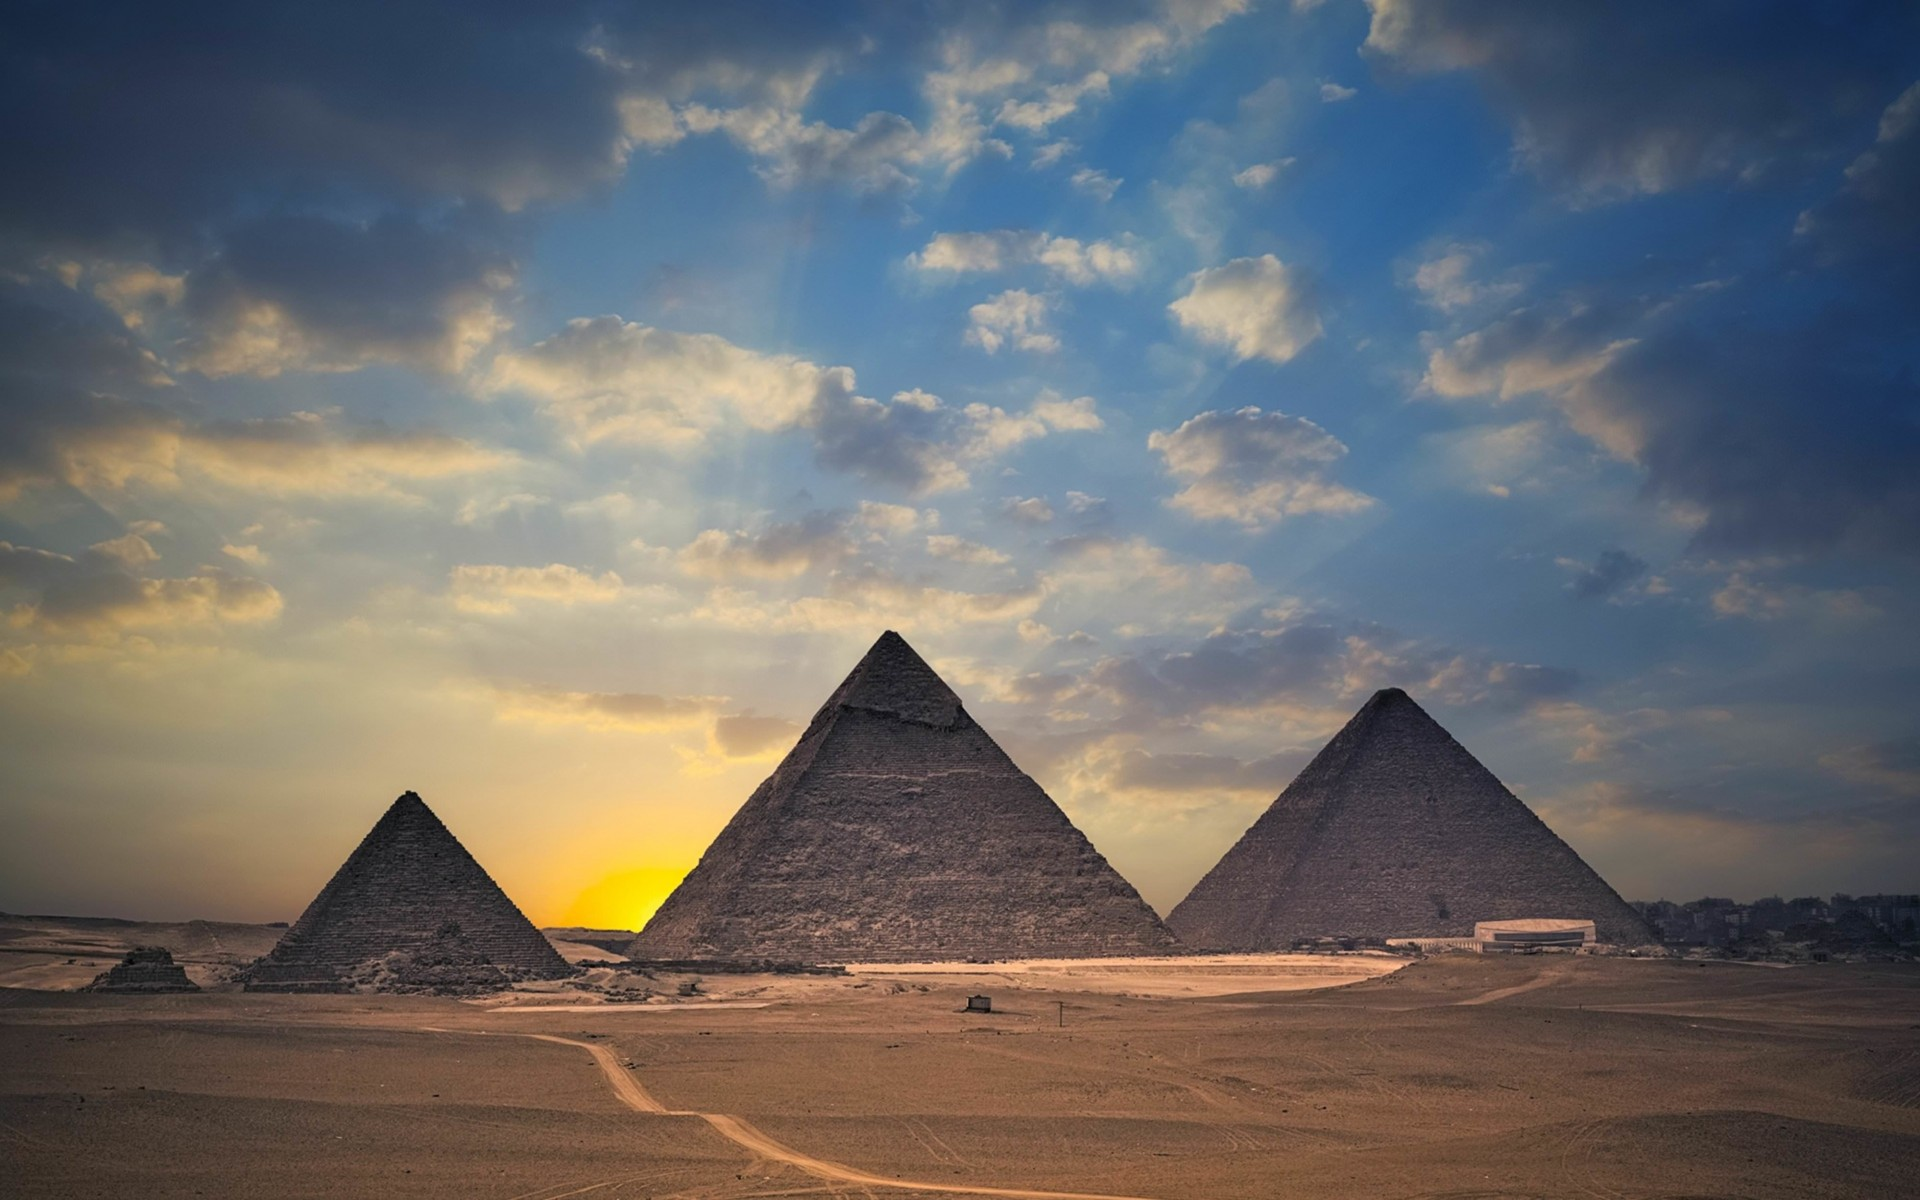 The Great Pyramids of Giza Wallpaper for Desktop 1920x1200